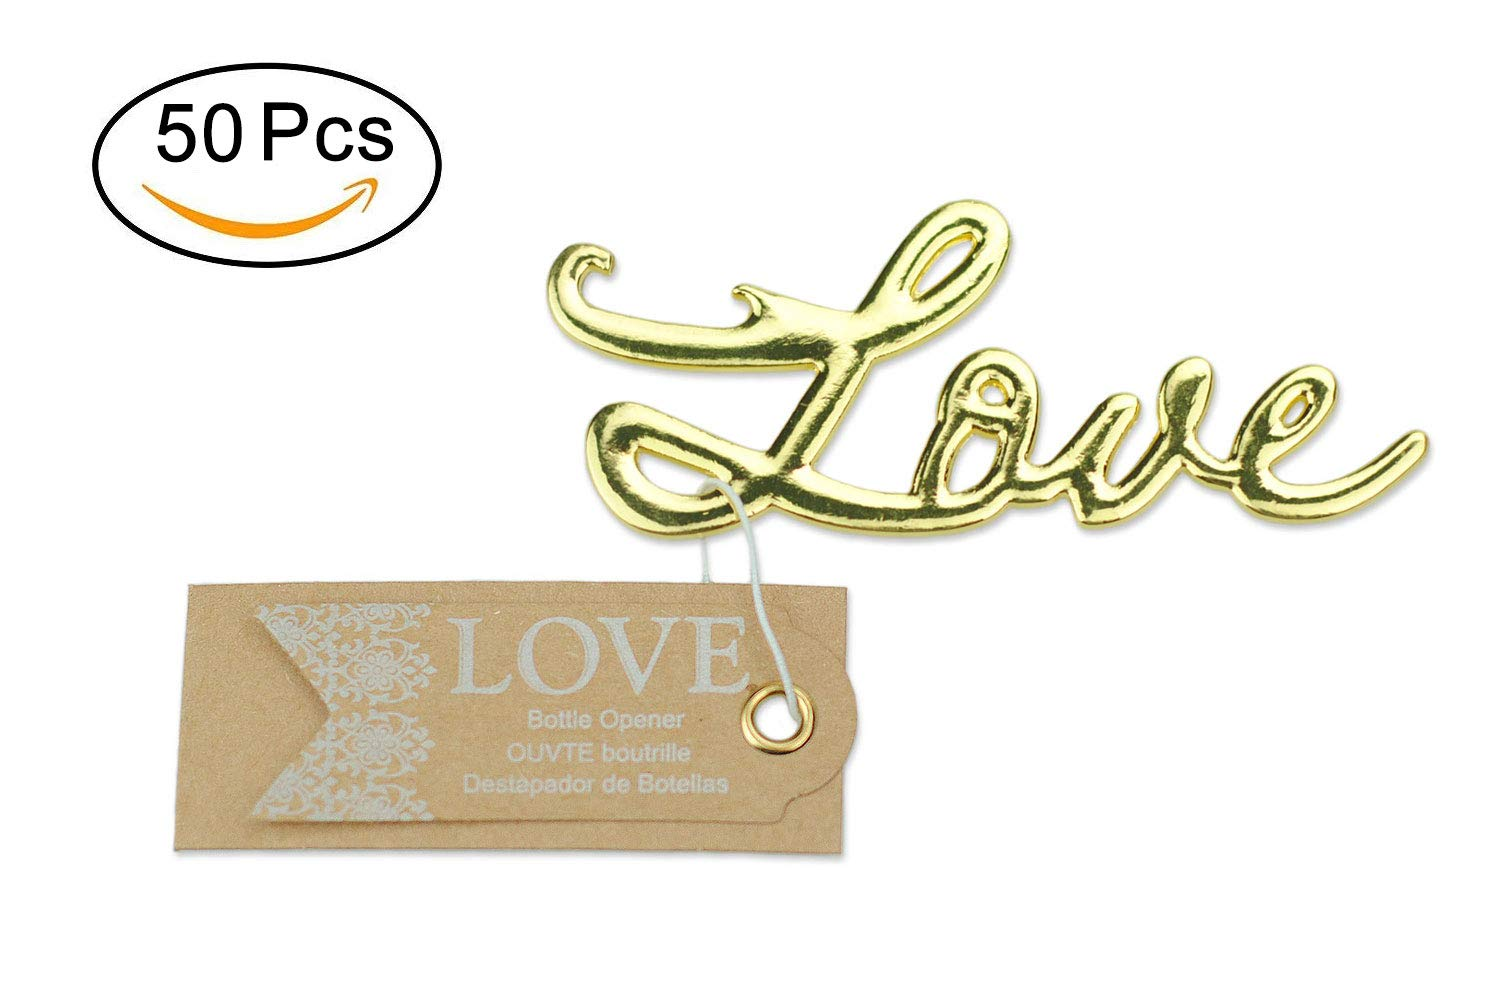 50 pcs Gold Bottle Openers Wedding Favors Decorations, Kraft Paper Label Card Tag, Love Shaped, Party Supplies by IBWell (Image #1)